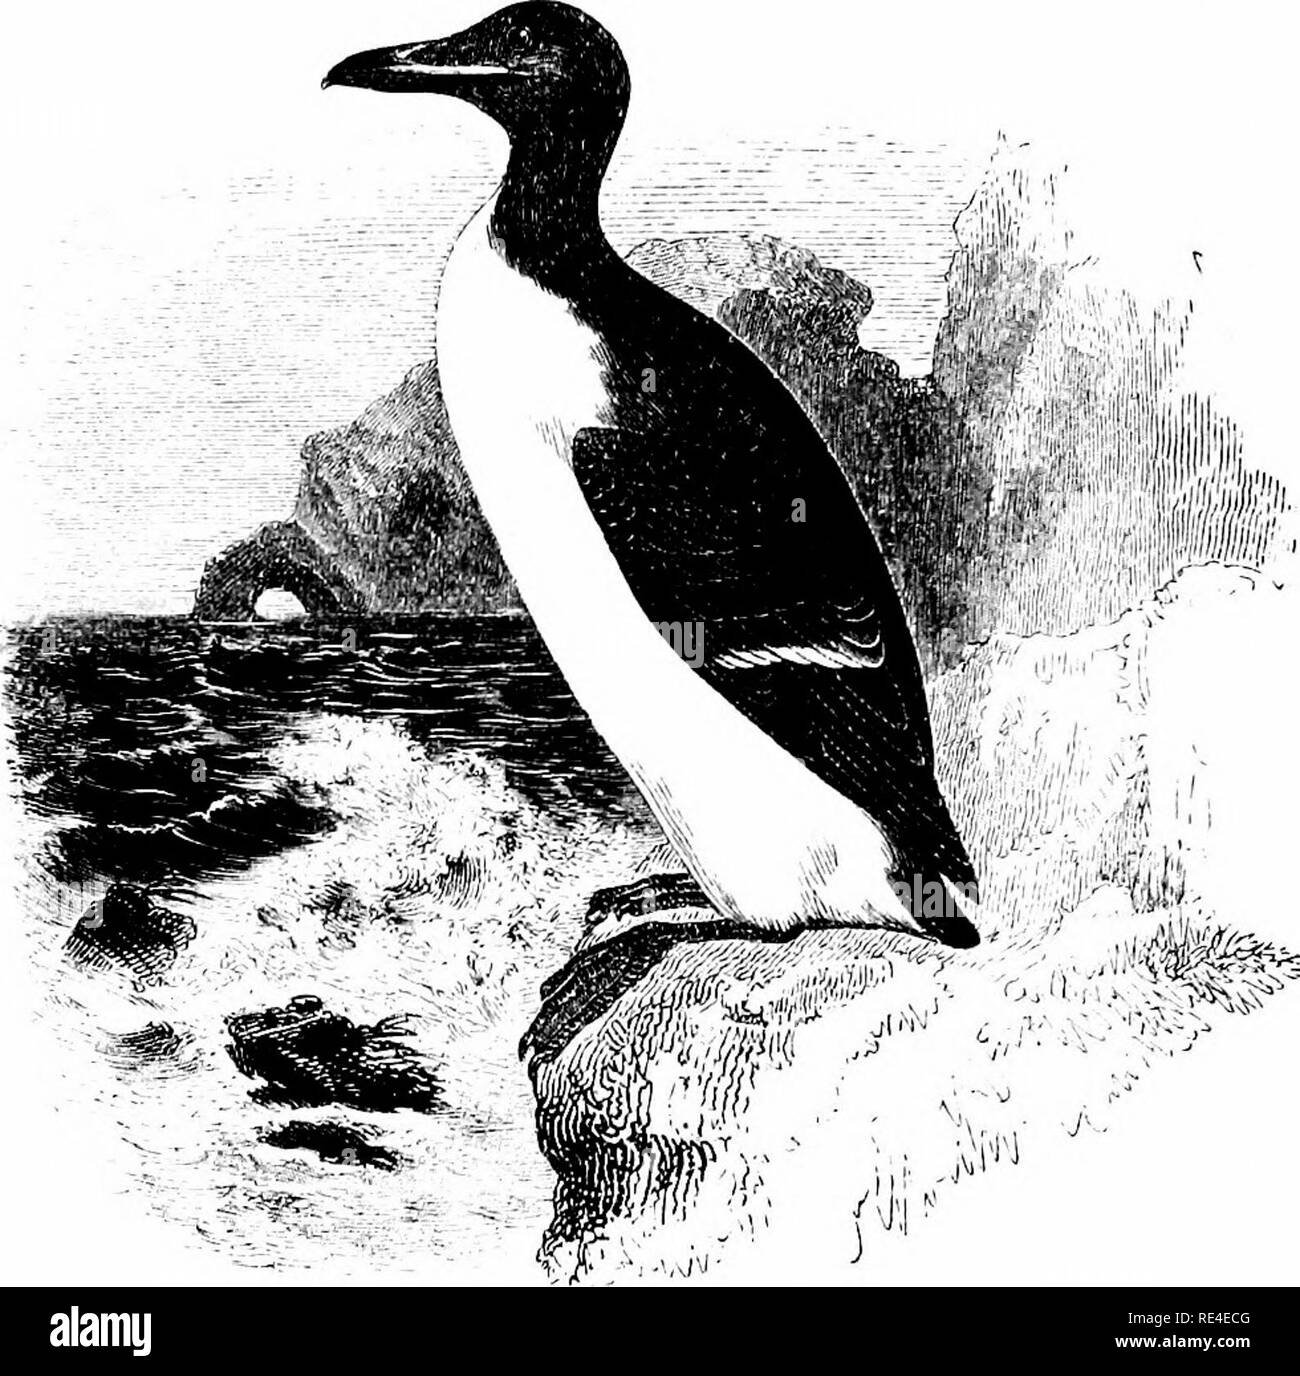 . An illustrated manual of British birds. Birds. ALCIN^. 701. BRUNNICH'S GUILLEMOT. Uria bruennichi, E. Sabine. This species may be distinguished from the preceding by its larger size, as well as by its stouter and deeper bill, for which reason it has been called the Thick-billed Guillemot; it is also blacker in plumage on the upper-parts. It was originally included in the British list upon somewhat slight evidence, for no competent observers had met with it on the coasts of Ireland, the Shetlands, the St. Kilda group, or in other places where it was said to have occurred; though it seemed pro - Stock Image